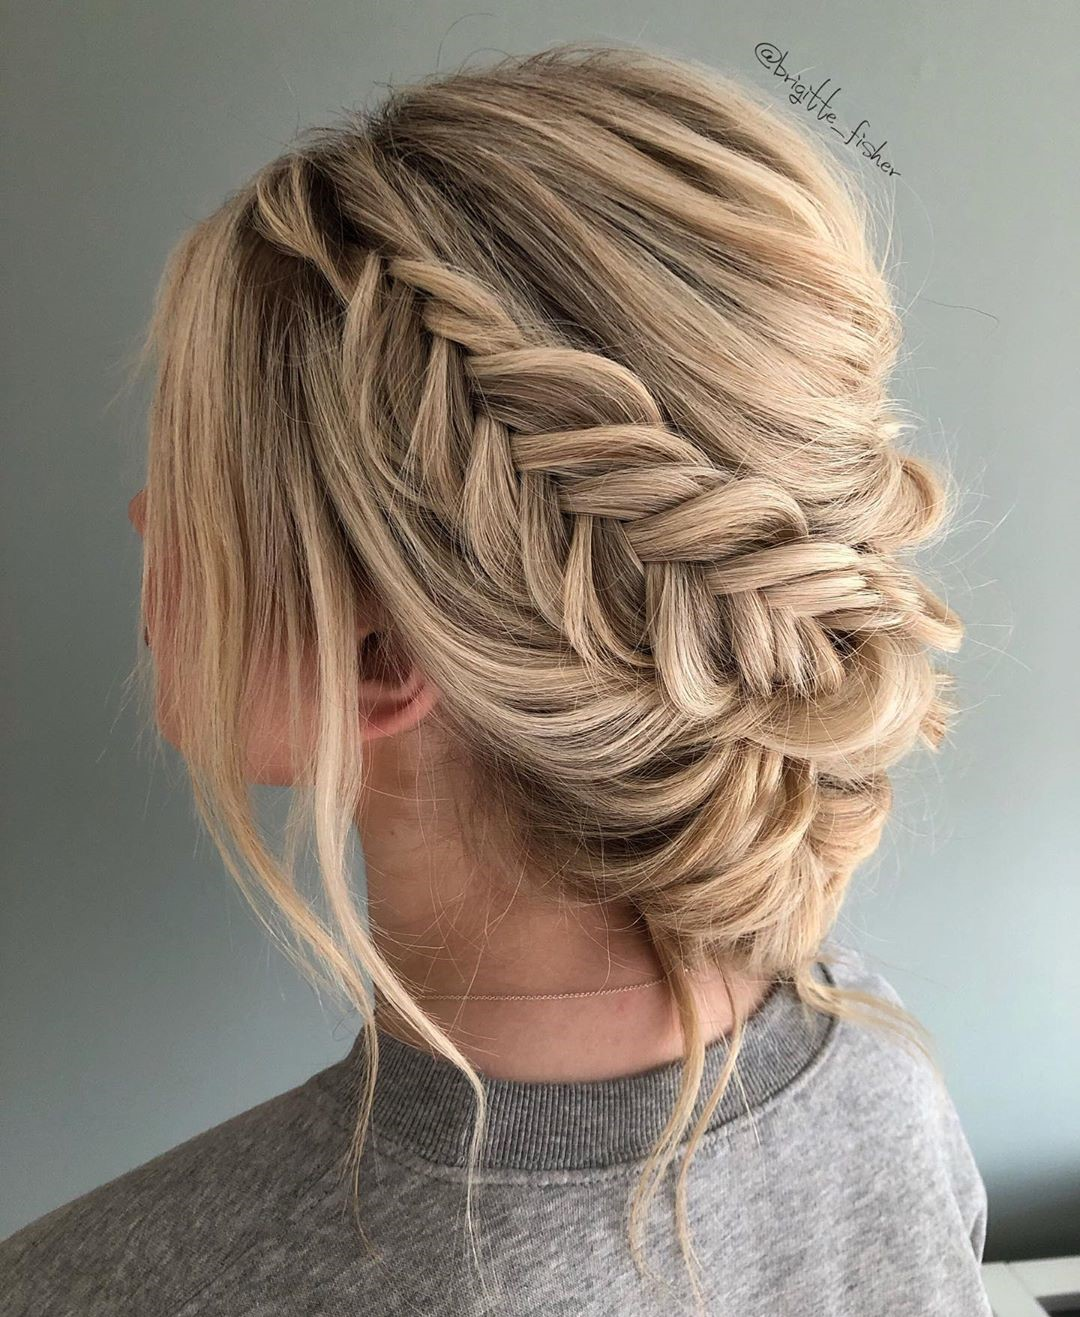 Messy Updo with a Fishtail Braid